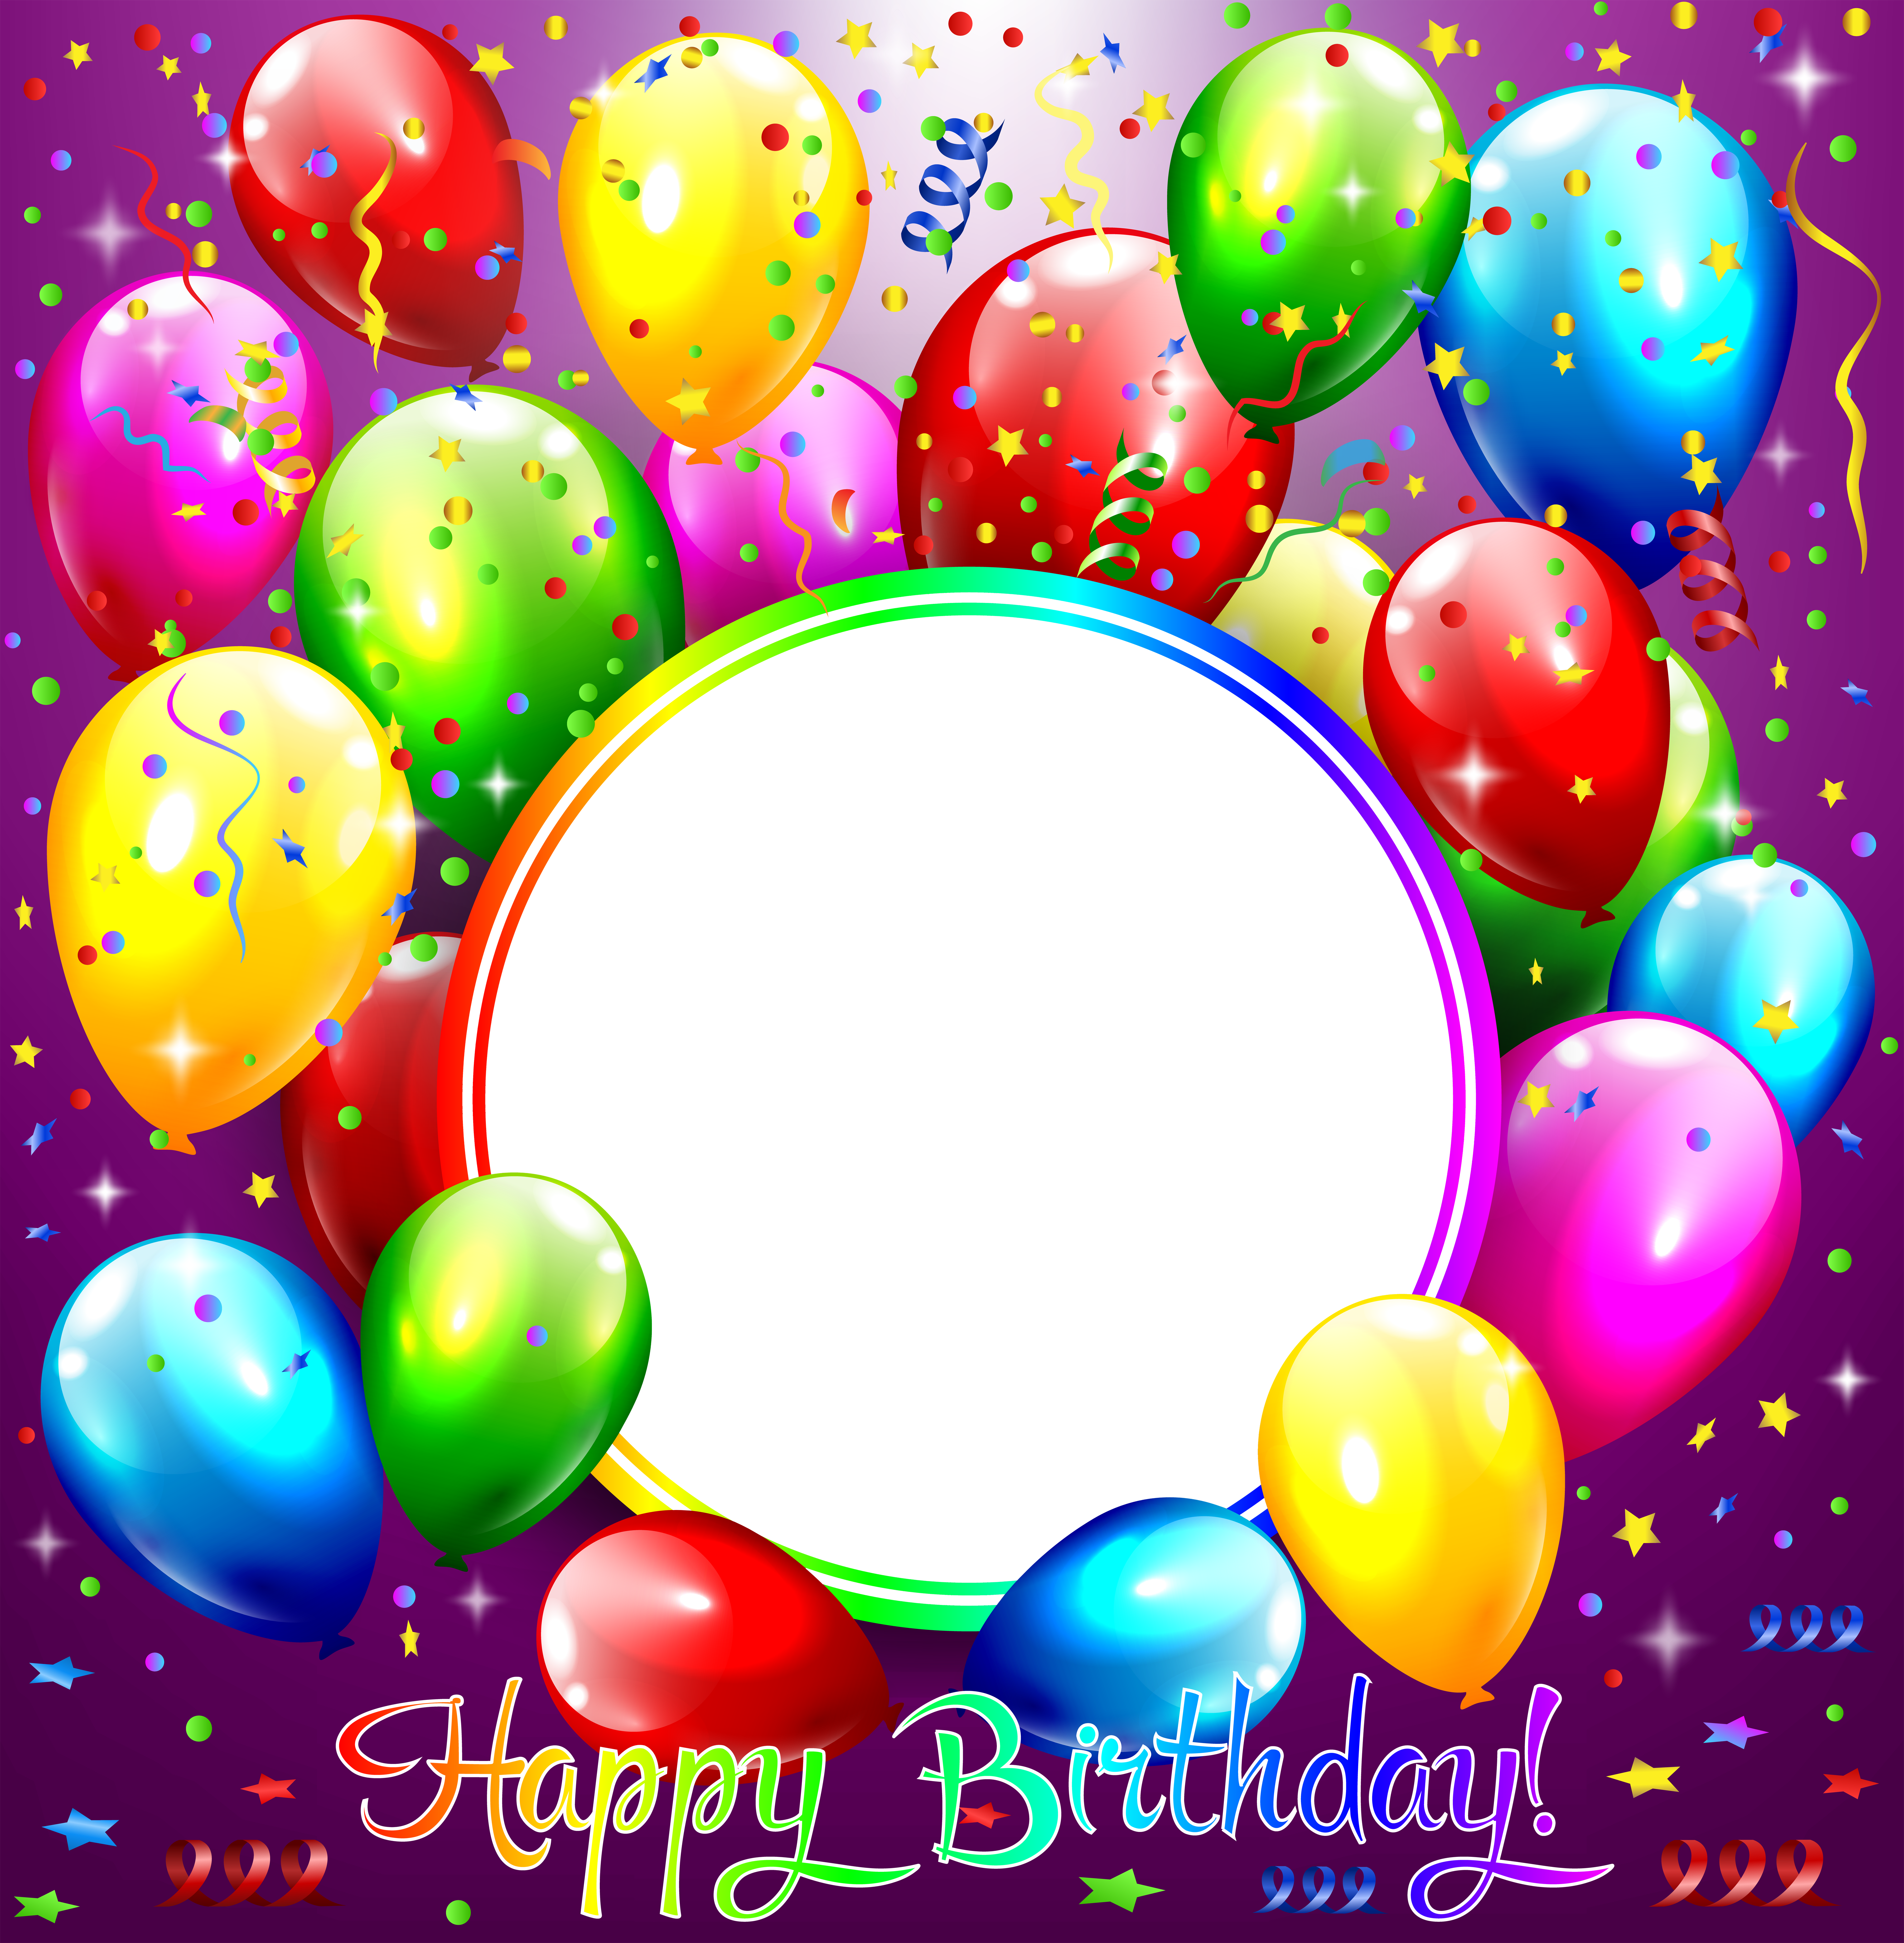 Happy Birthday Frame Happy Birthday Photos Birthday Transparent Background Happy Birthday Frames Png Transparent Cartoon Jing Fm